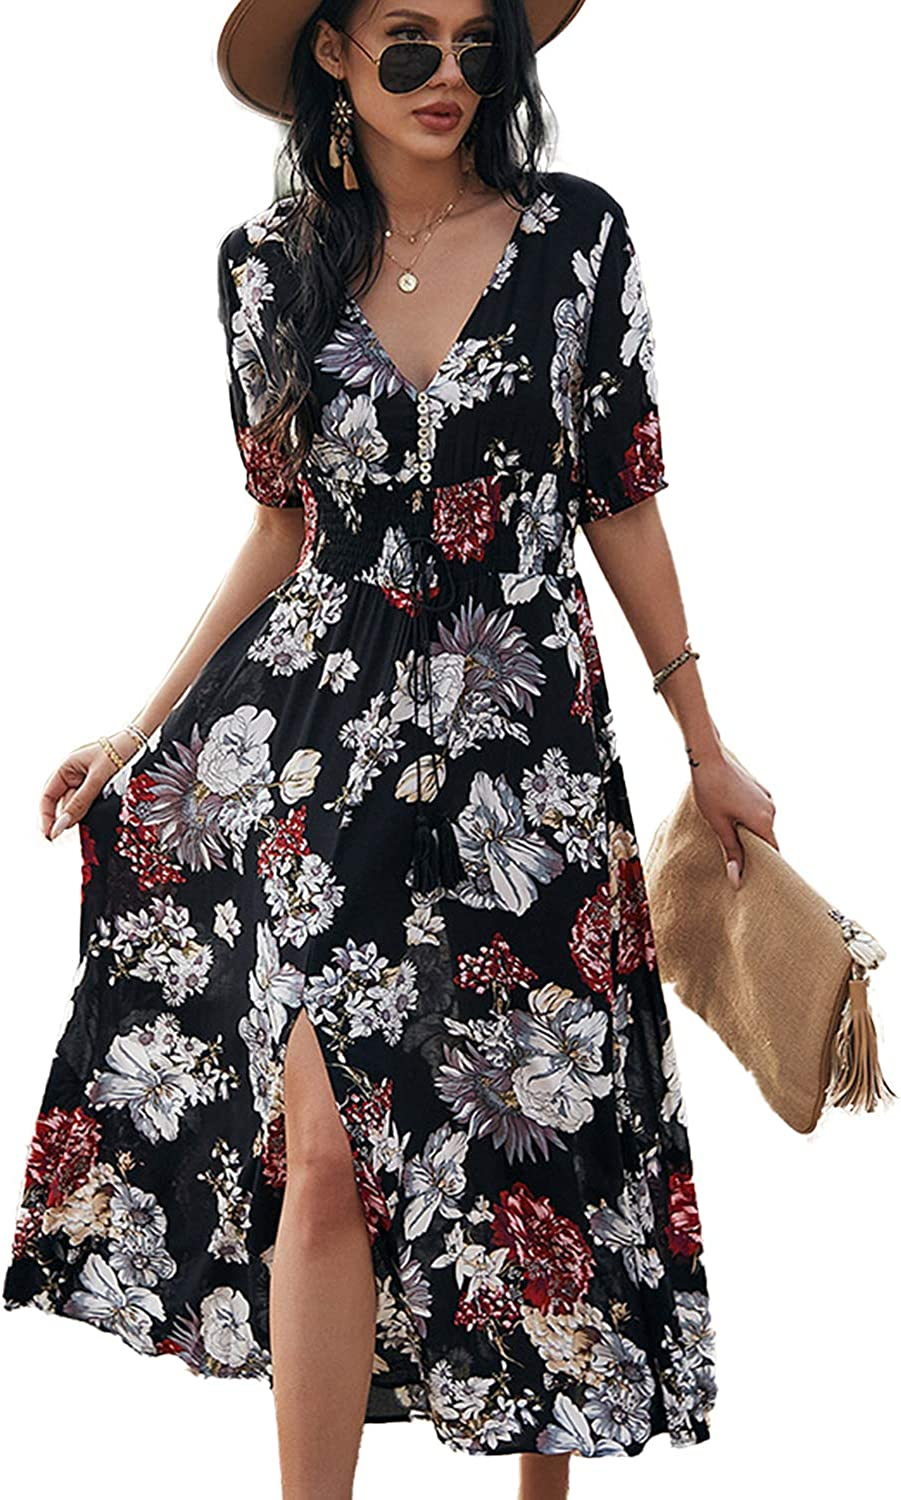 BROVAVE Womens Summer Casual Short Sleeve Floral Print Bohemian V Neck Flowy Midi Maxi Dress with Slit